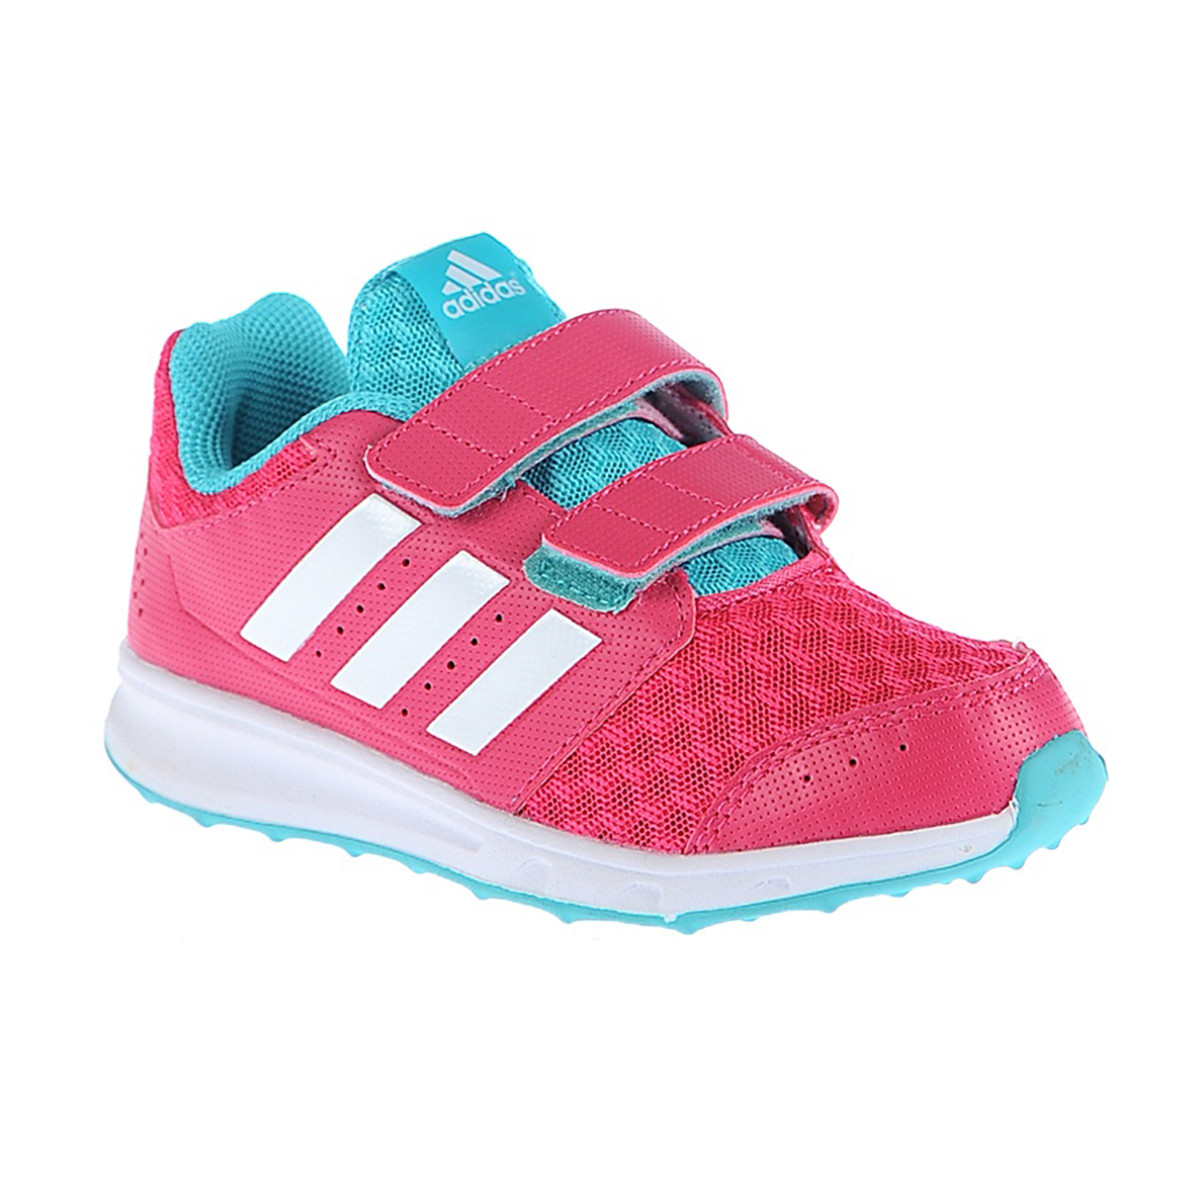 Baskets Pas Adidas Cher Sport Fille Basses Lk 2 Chaussure Rose WCxBorde